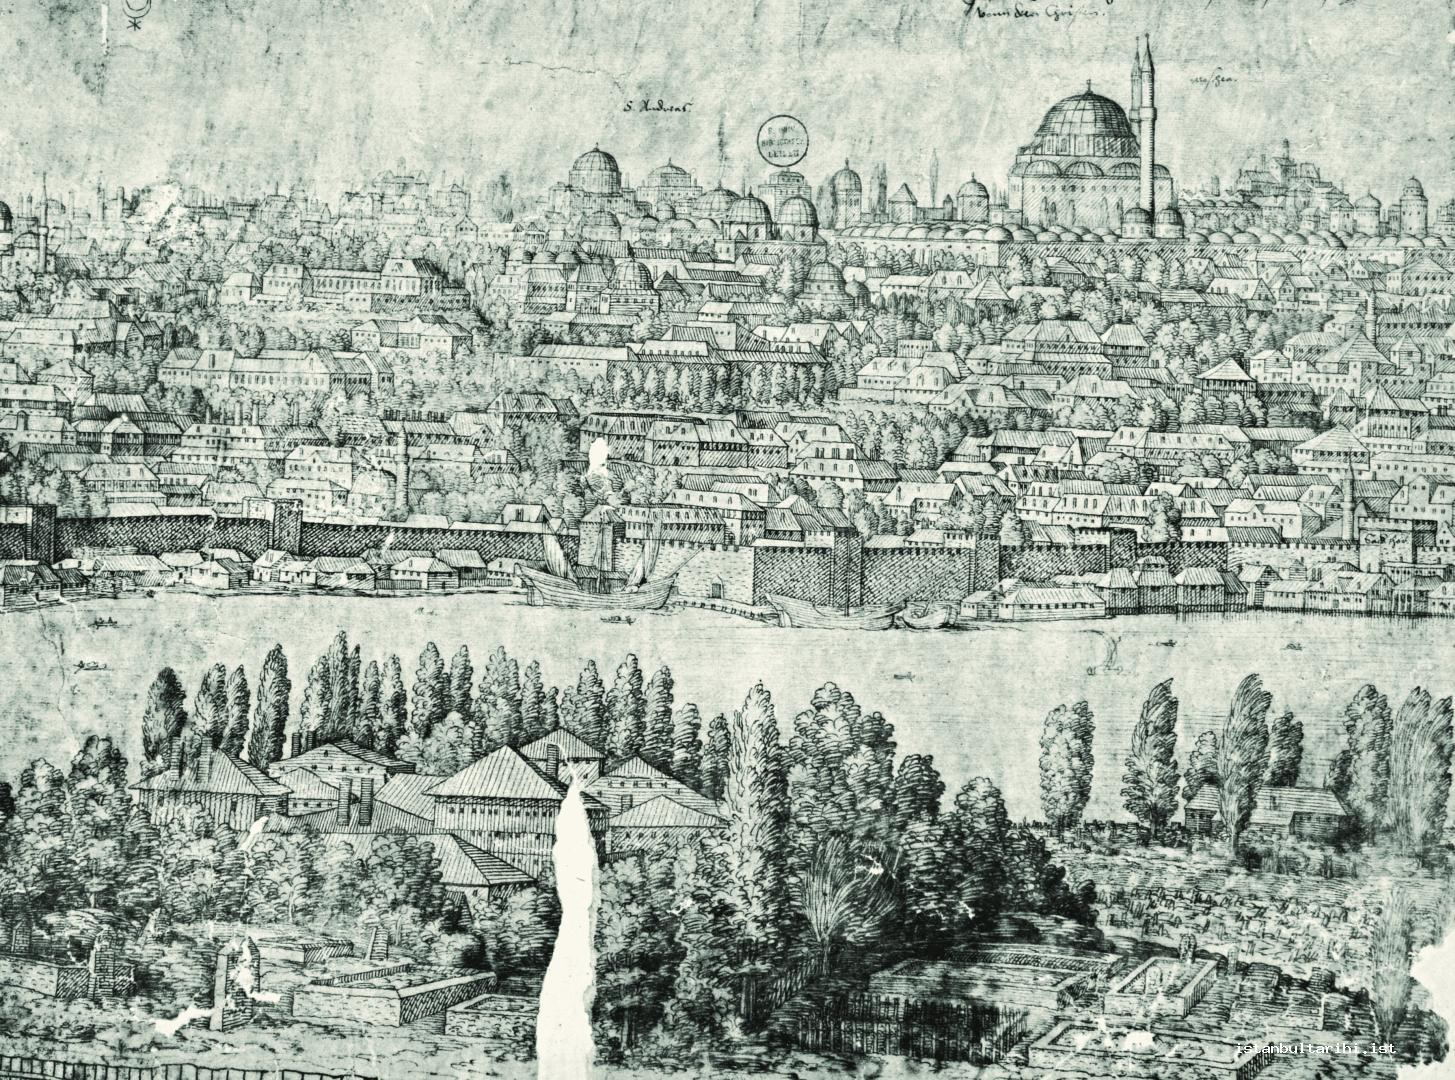 26- The early state of Fatih Complex founded by Sultan Mehmed II (the structure destroyed by 1766 Earthquake and existed before the present complex which was built in its place.) Two shores of Golden Horn and the Walls (Lorichs)